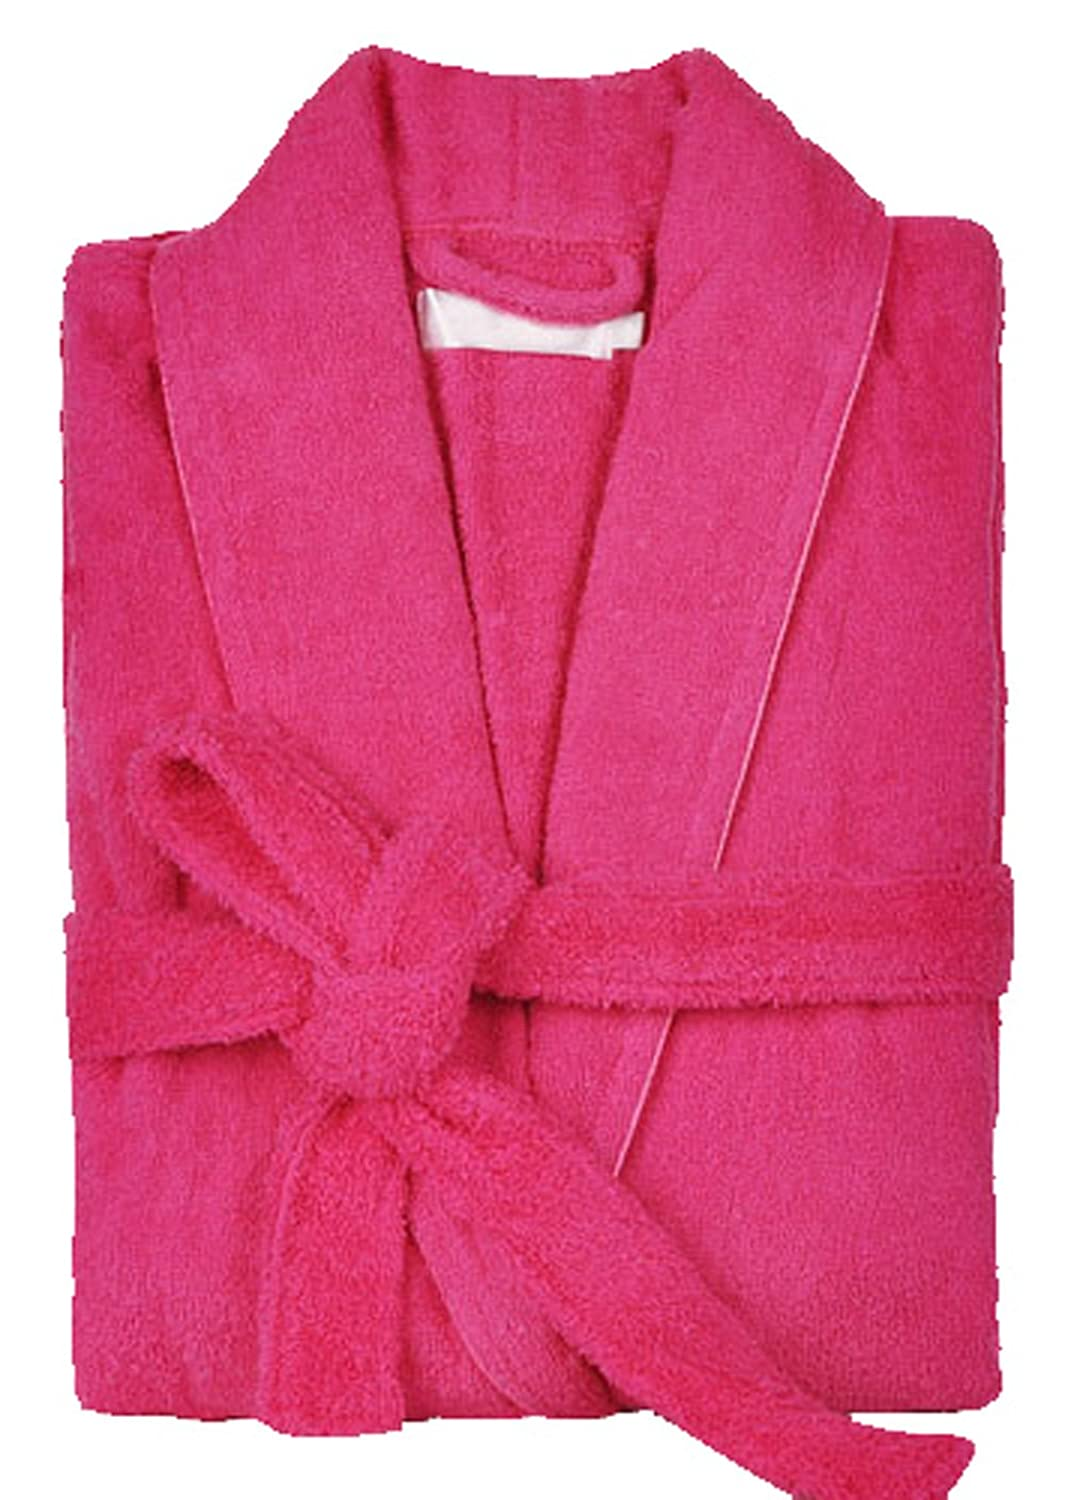 S.T.M Women's Winter 100% Cotton Thick Terry Cloth Robe Knee Length Cotton Robe